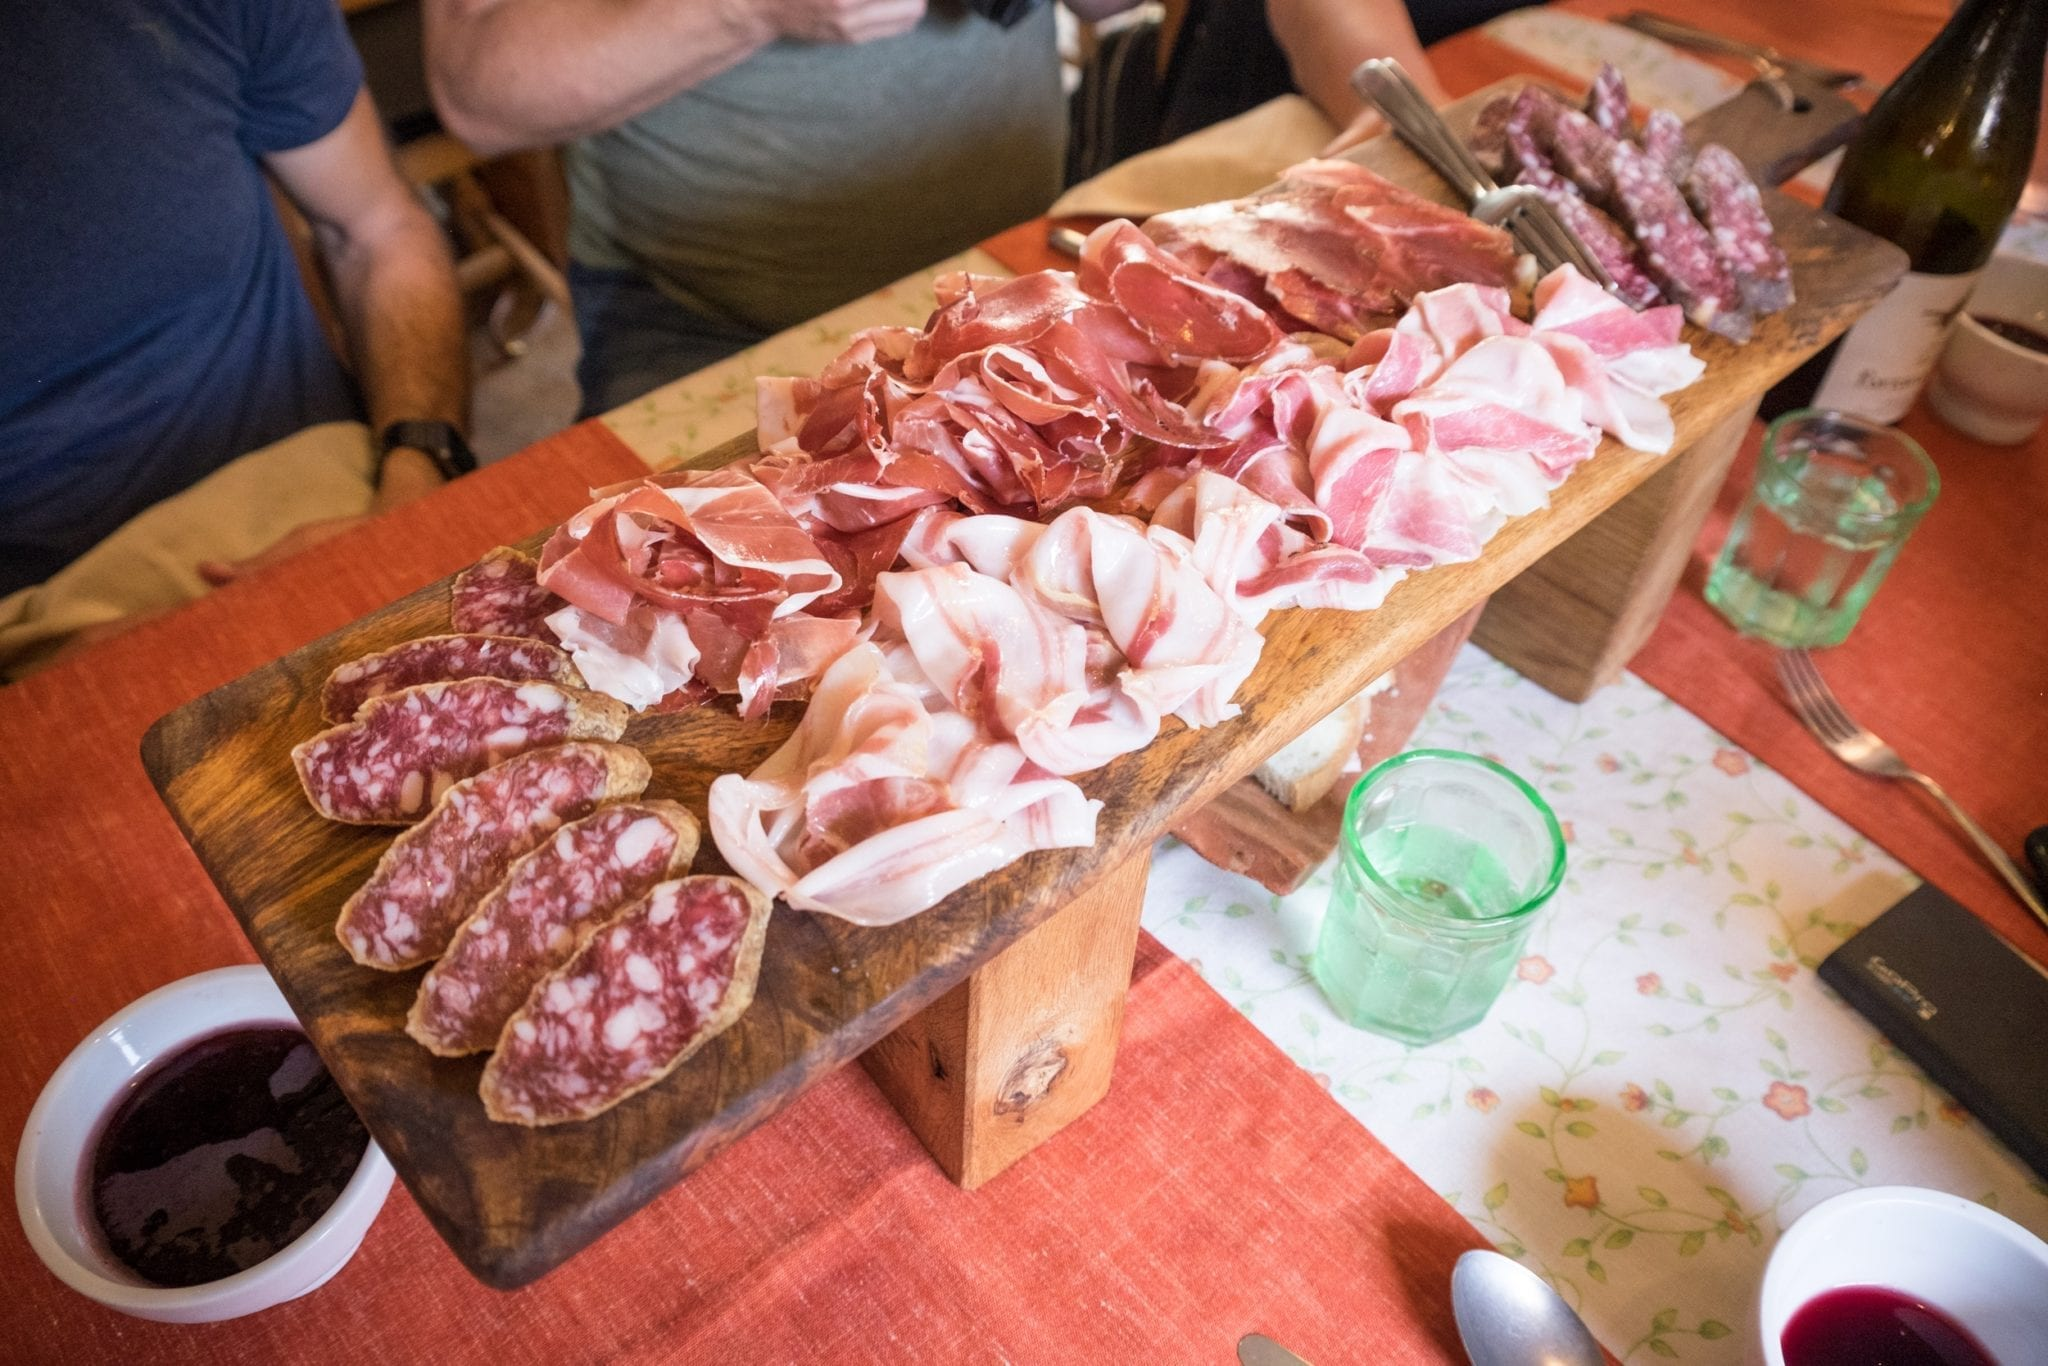 A large wooden platter covered with several cured meats, including culatello, salami, and raw pancetta (white and slithery and gross, but hey, some people are into that).